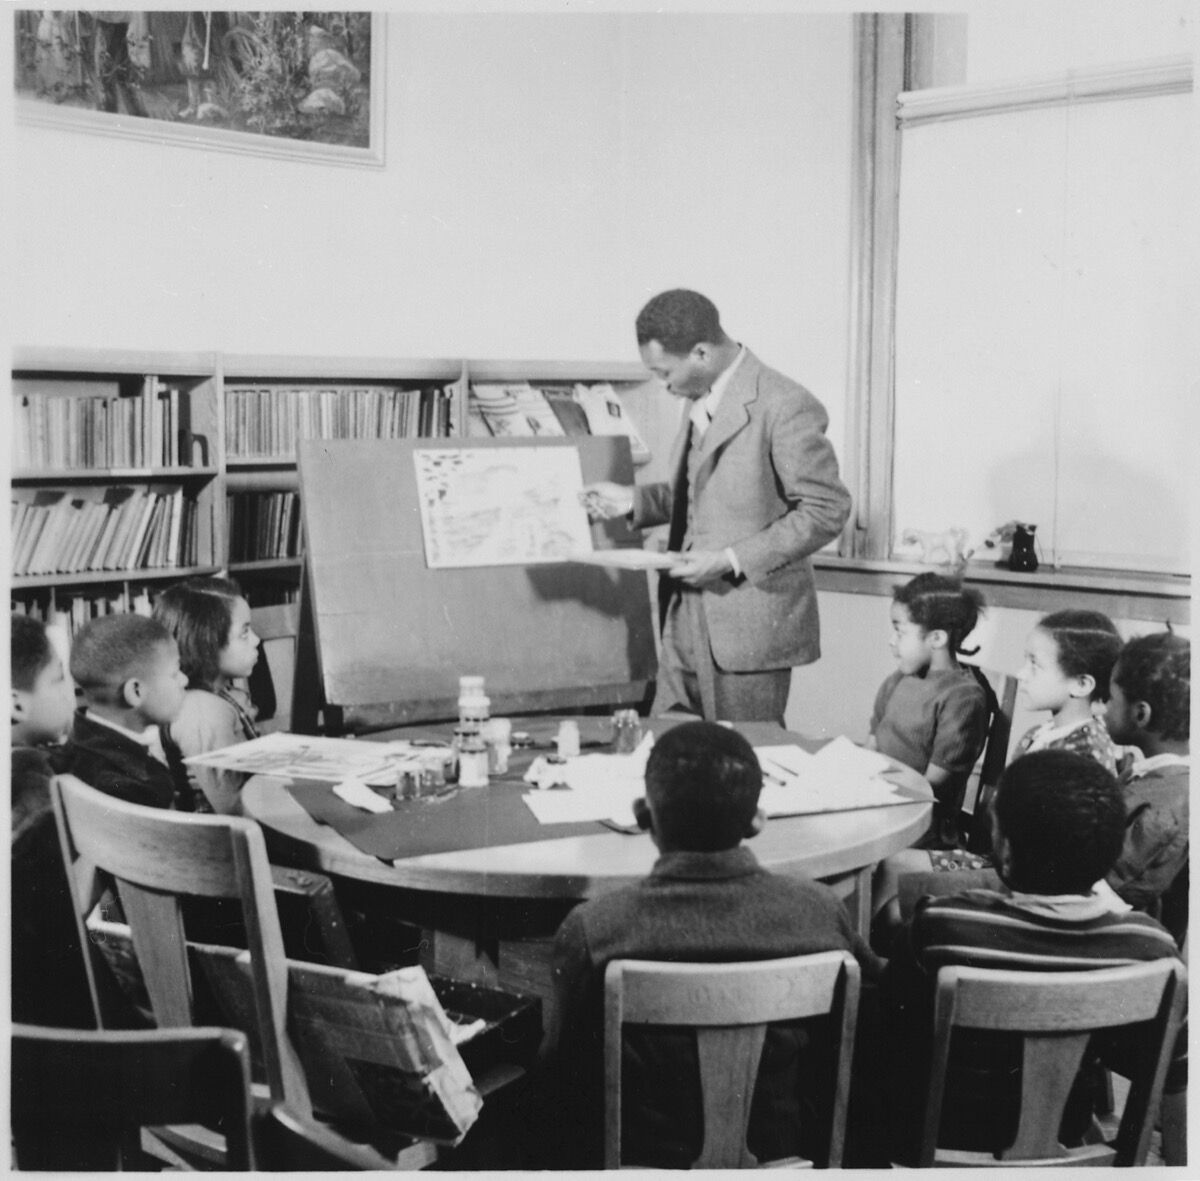 Jacob Lawrence demonstration at Lincoln School. Image via Wikimedia Commons.